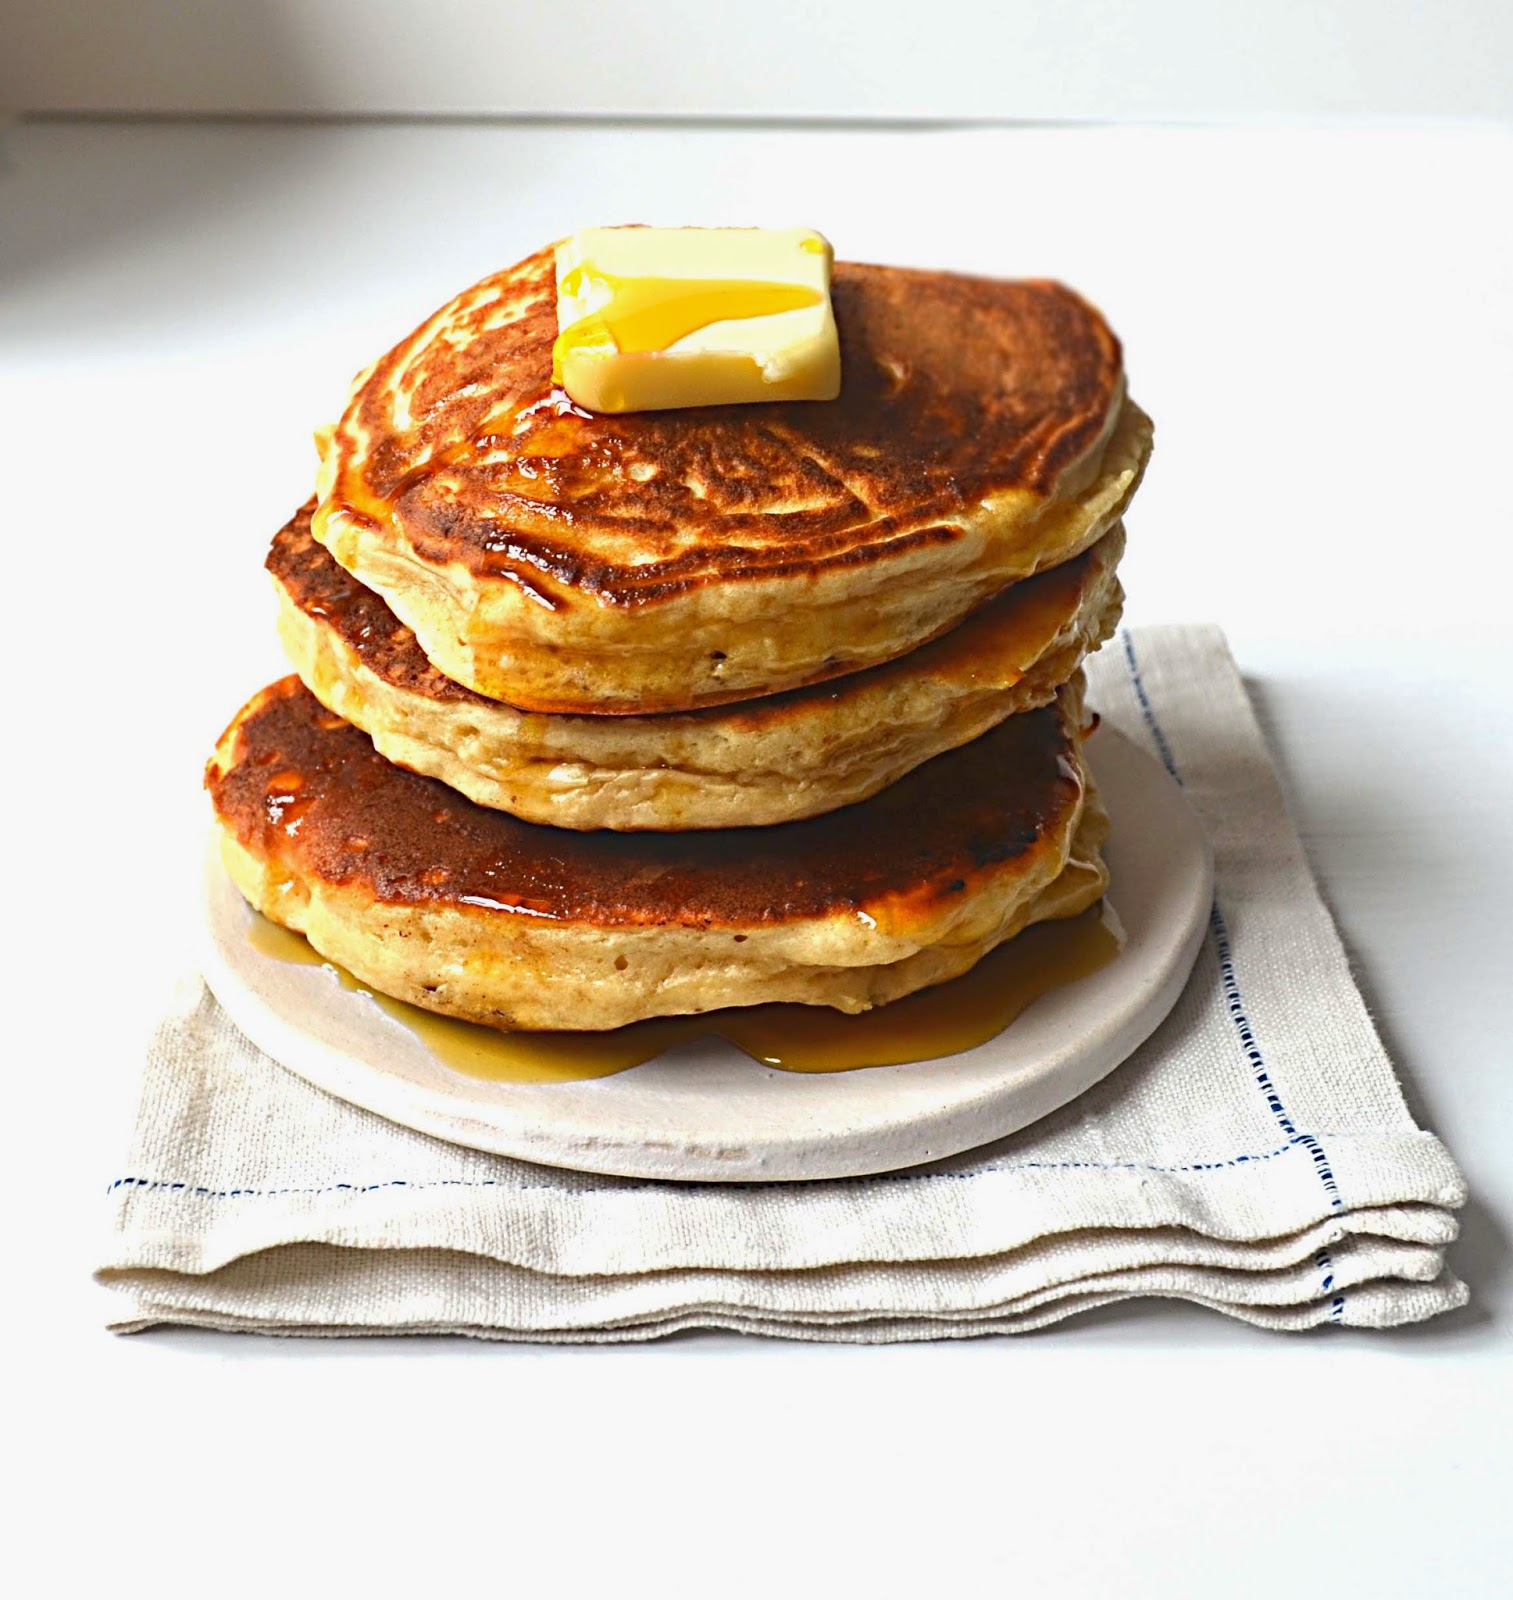 Sew French: The Best Buttermilk Pancakes